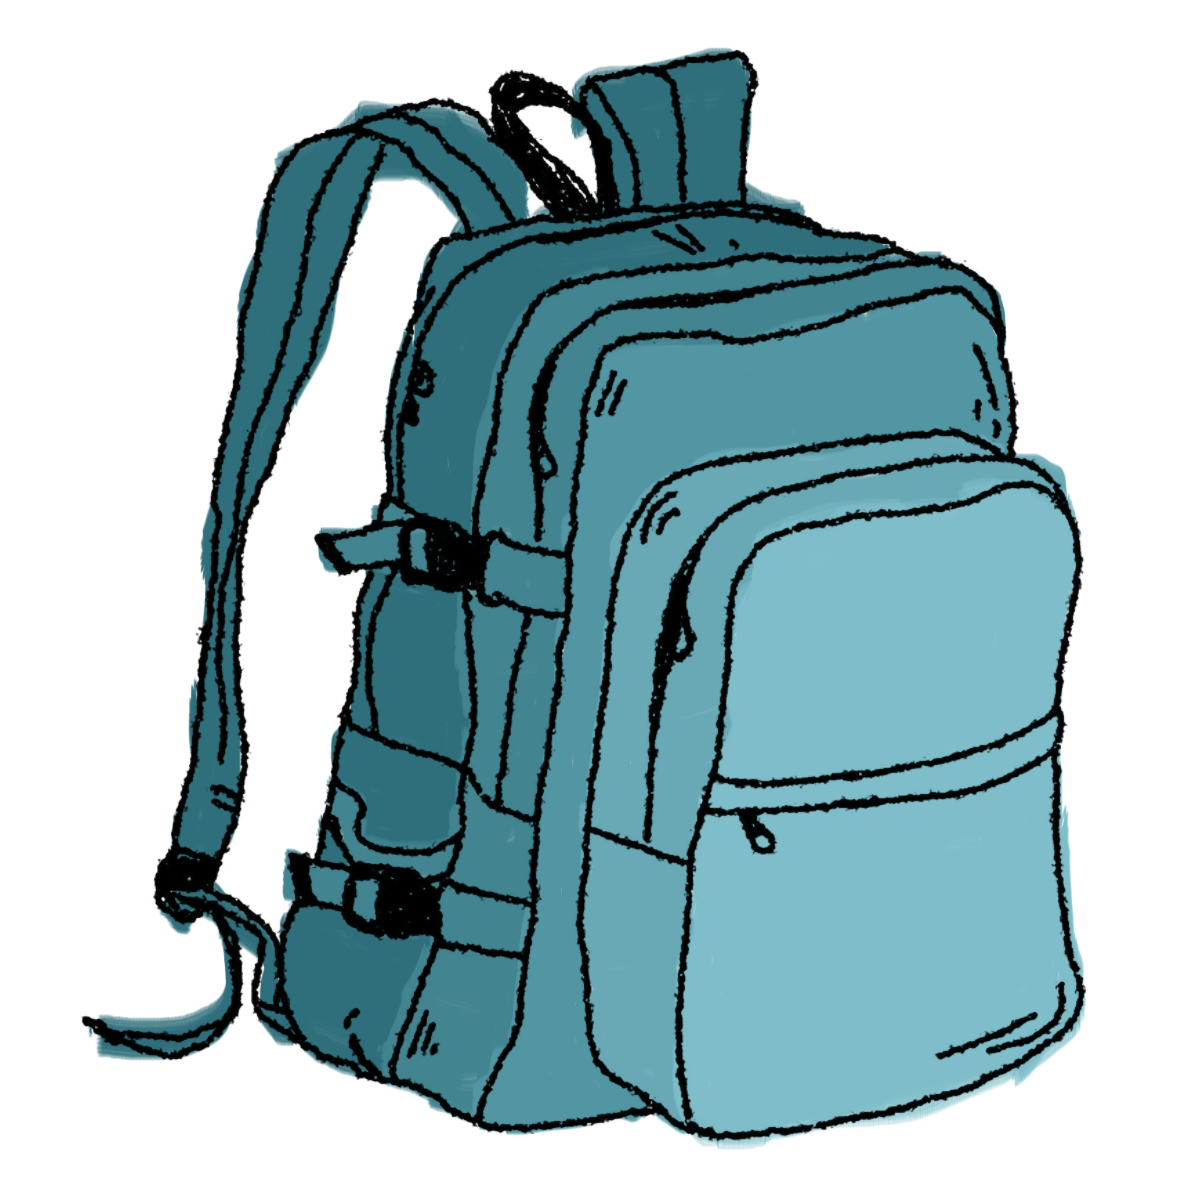 1200x1200 Hiking Backpack Clip Art Free Book Bag Hiking